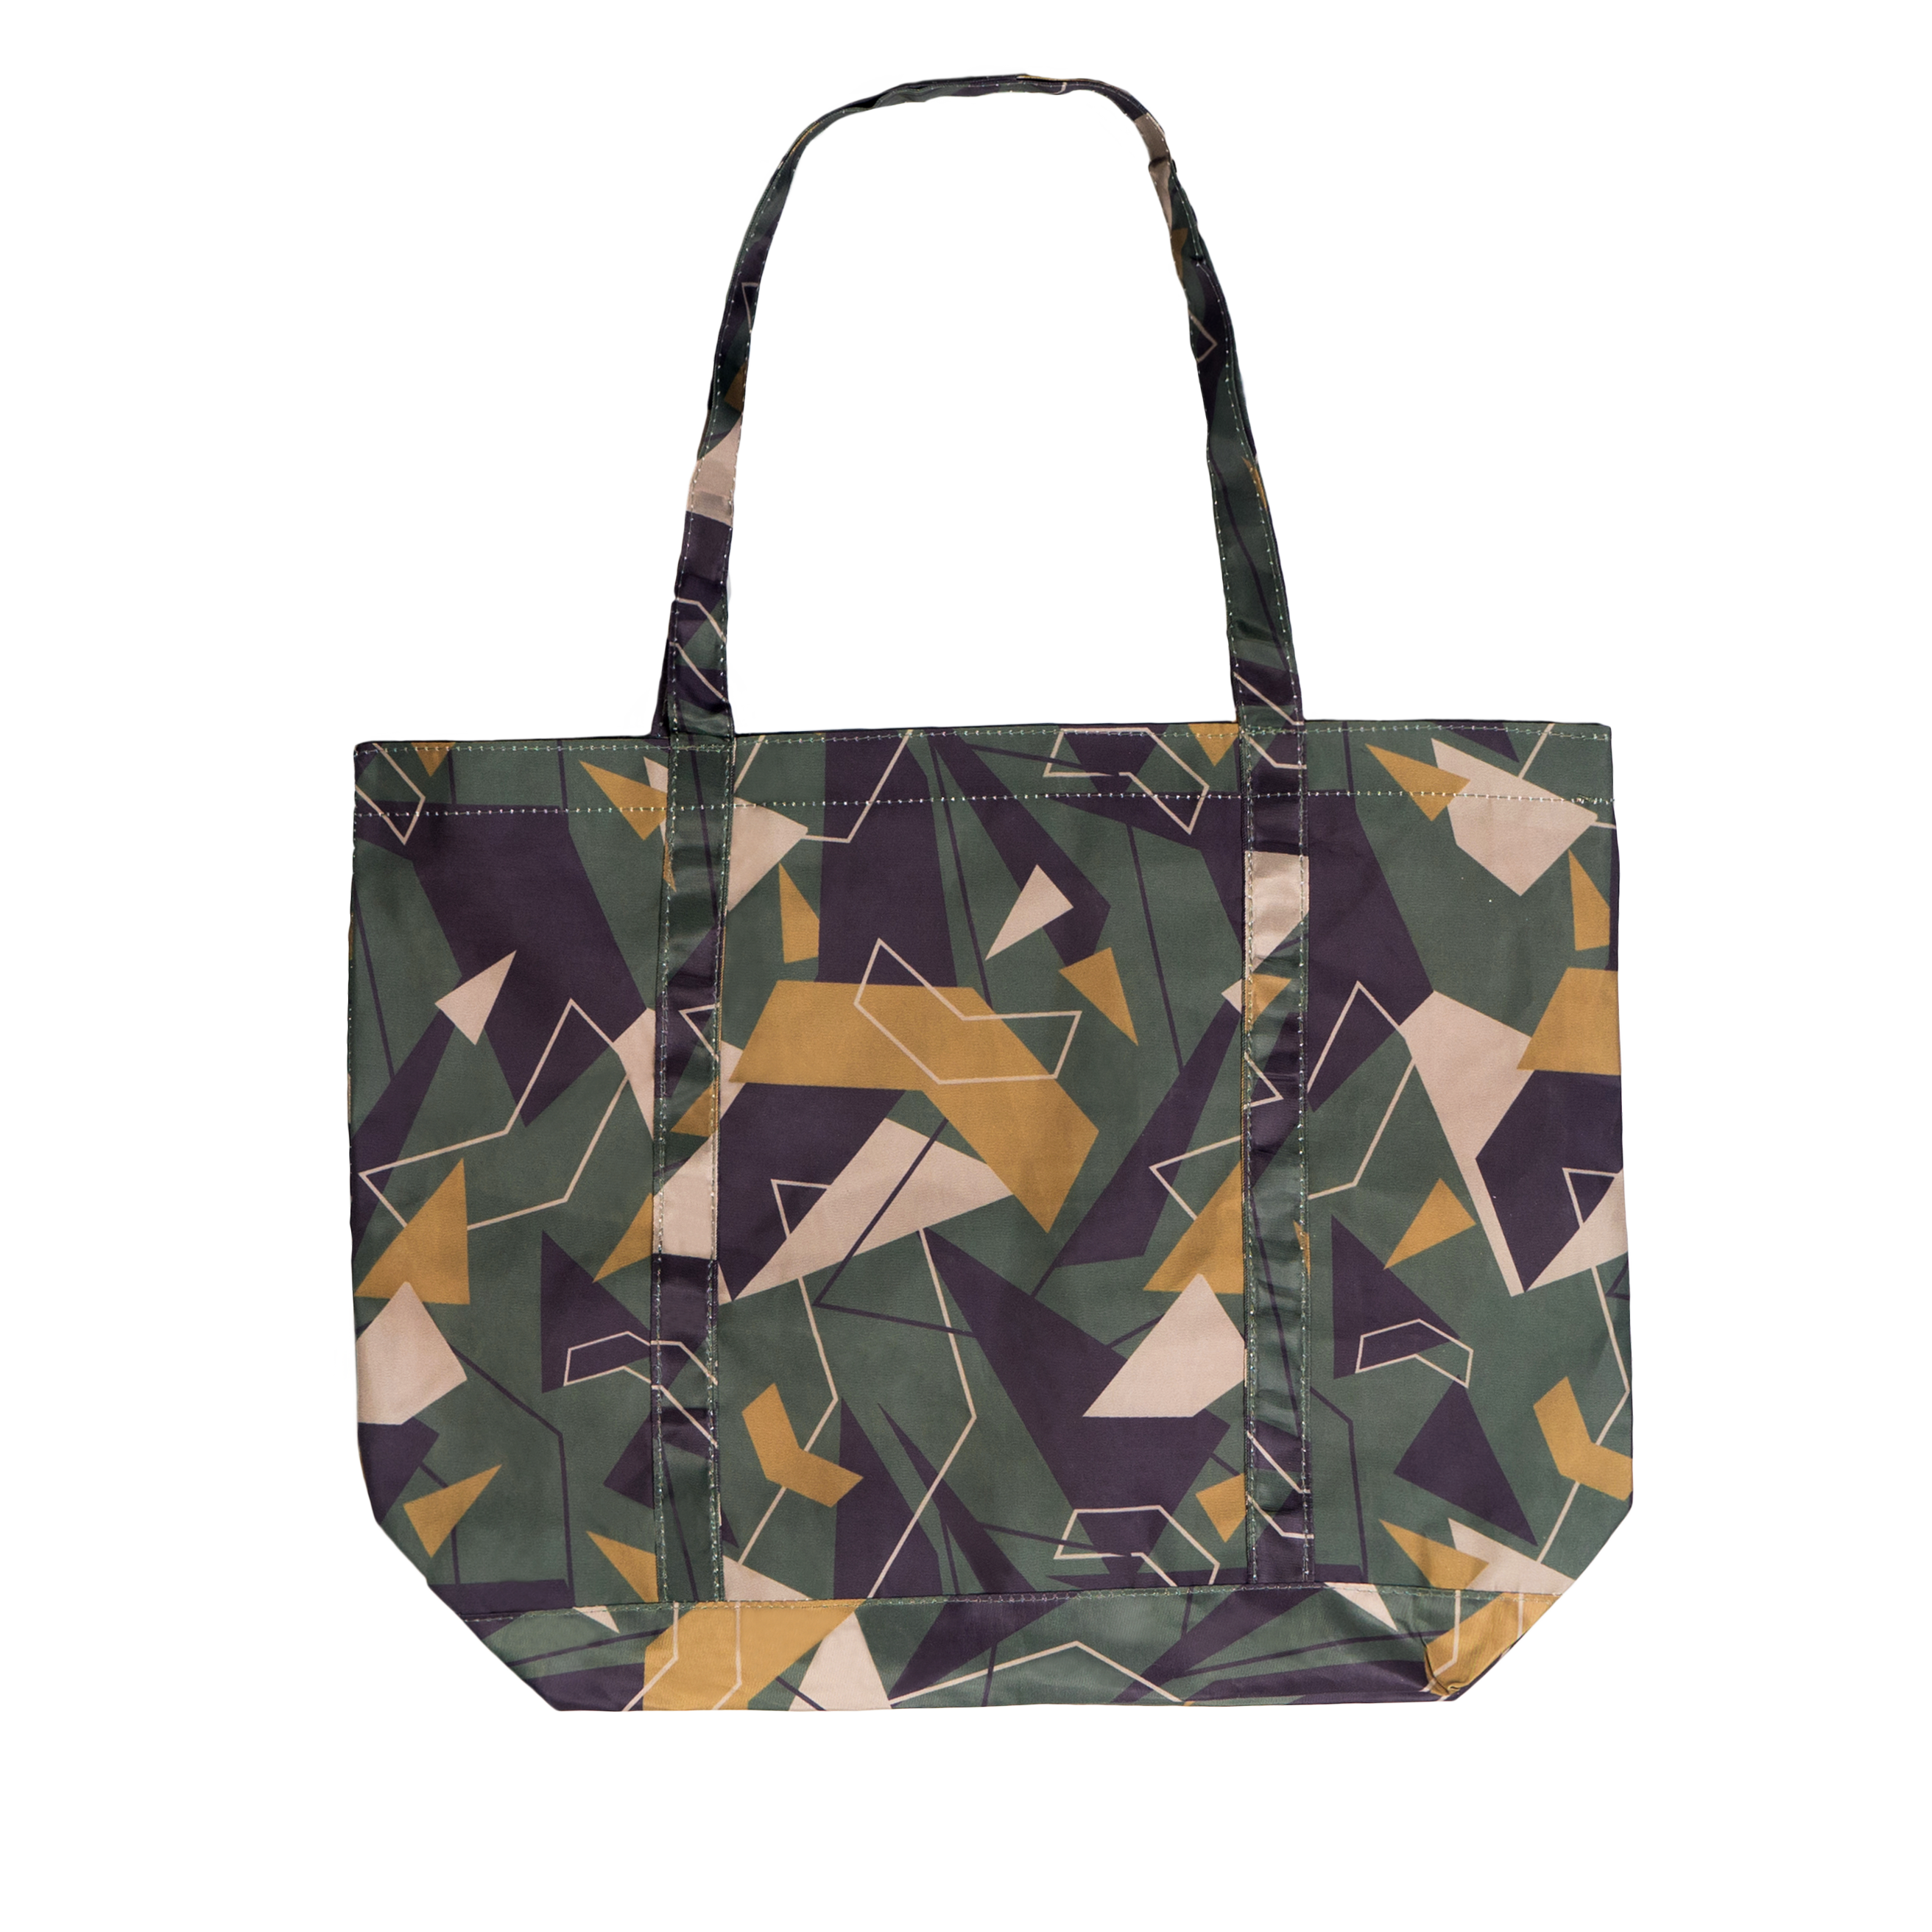 1ST GREEN CAMO TOTE BAG (1ST グリーン カモ トート バッグ)